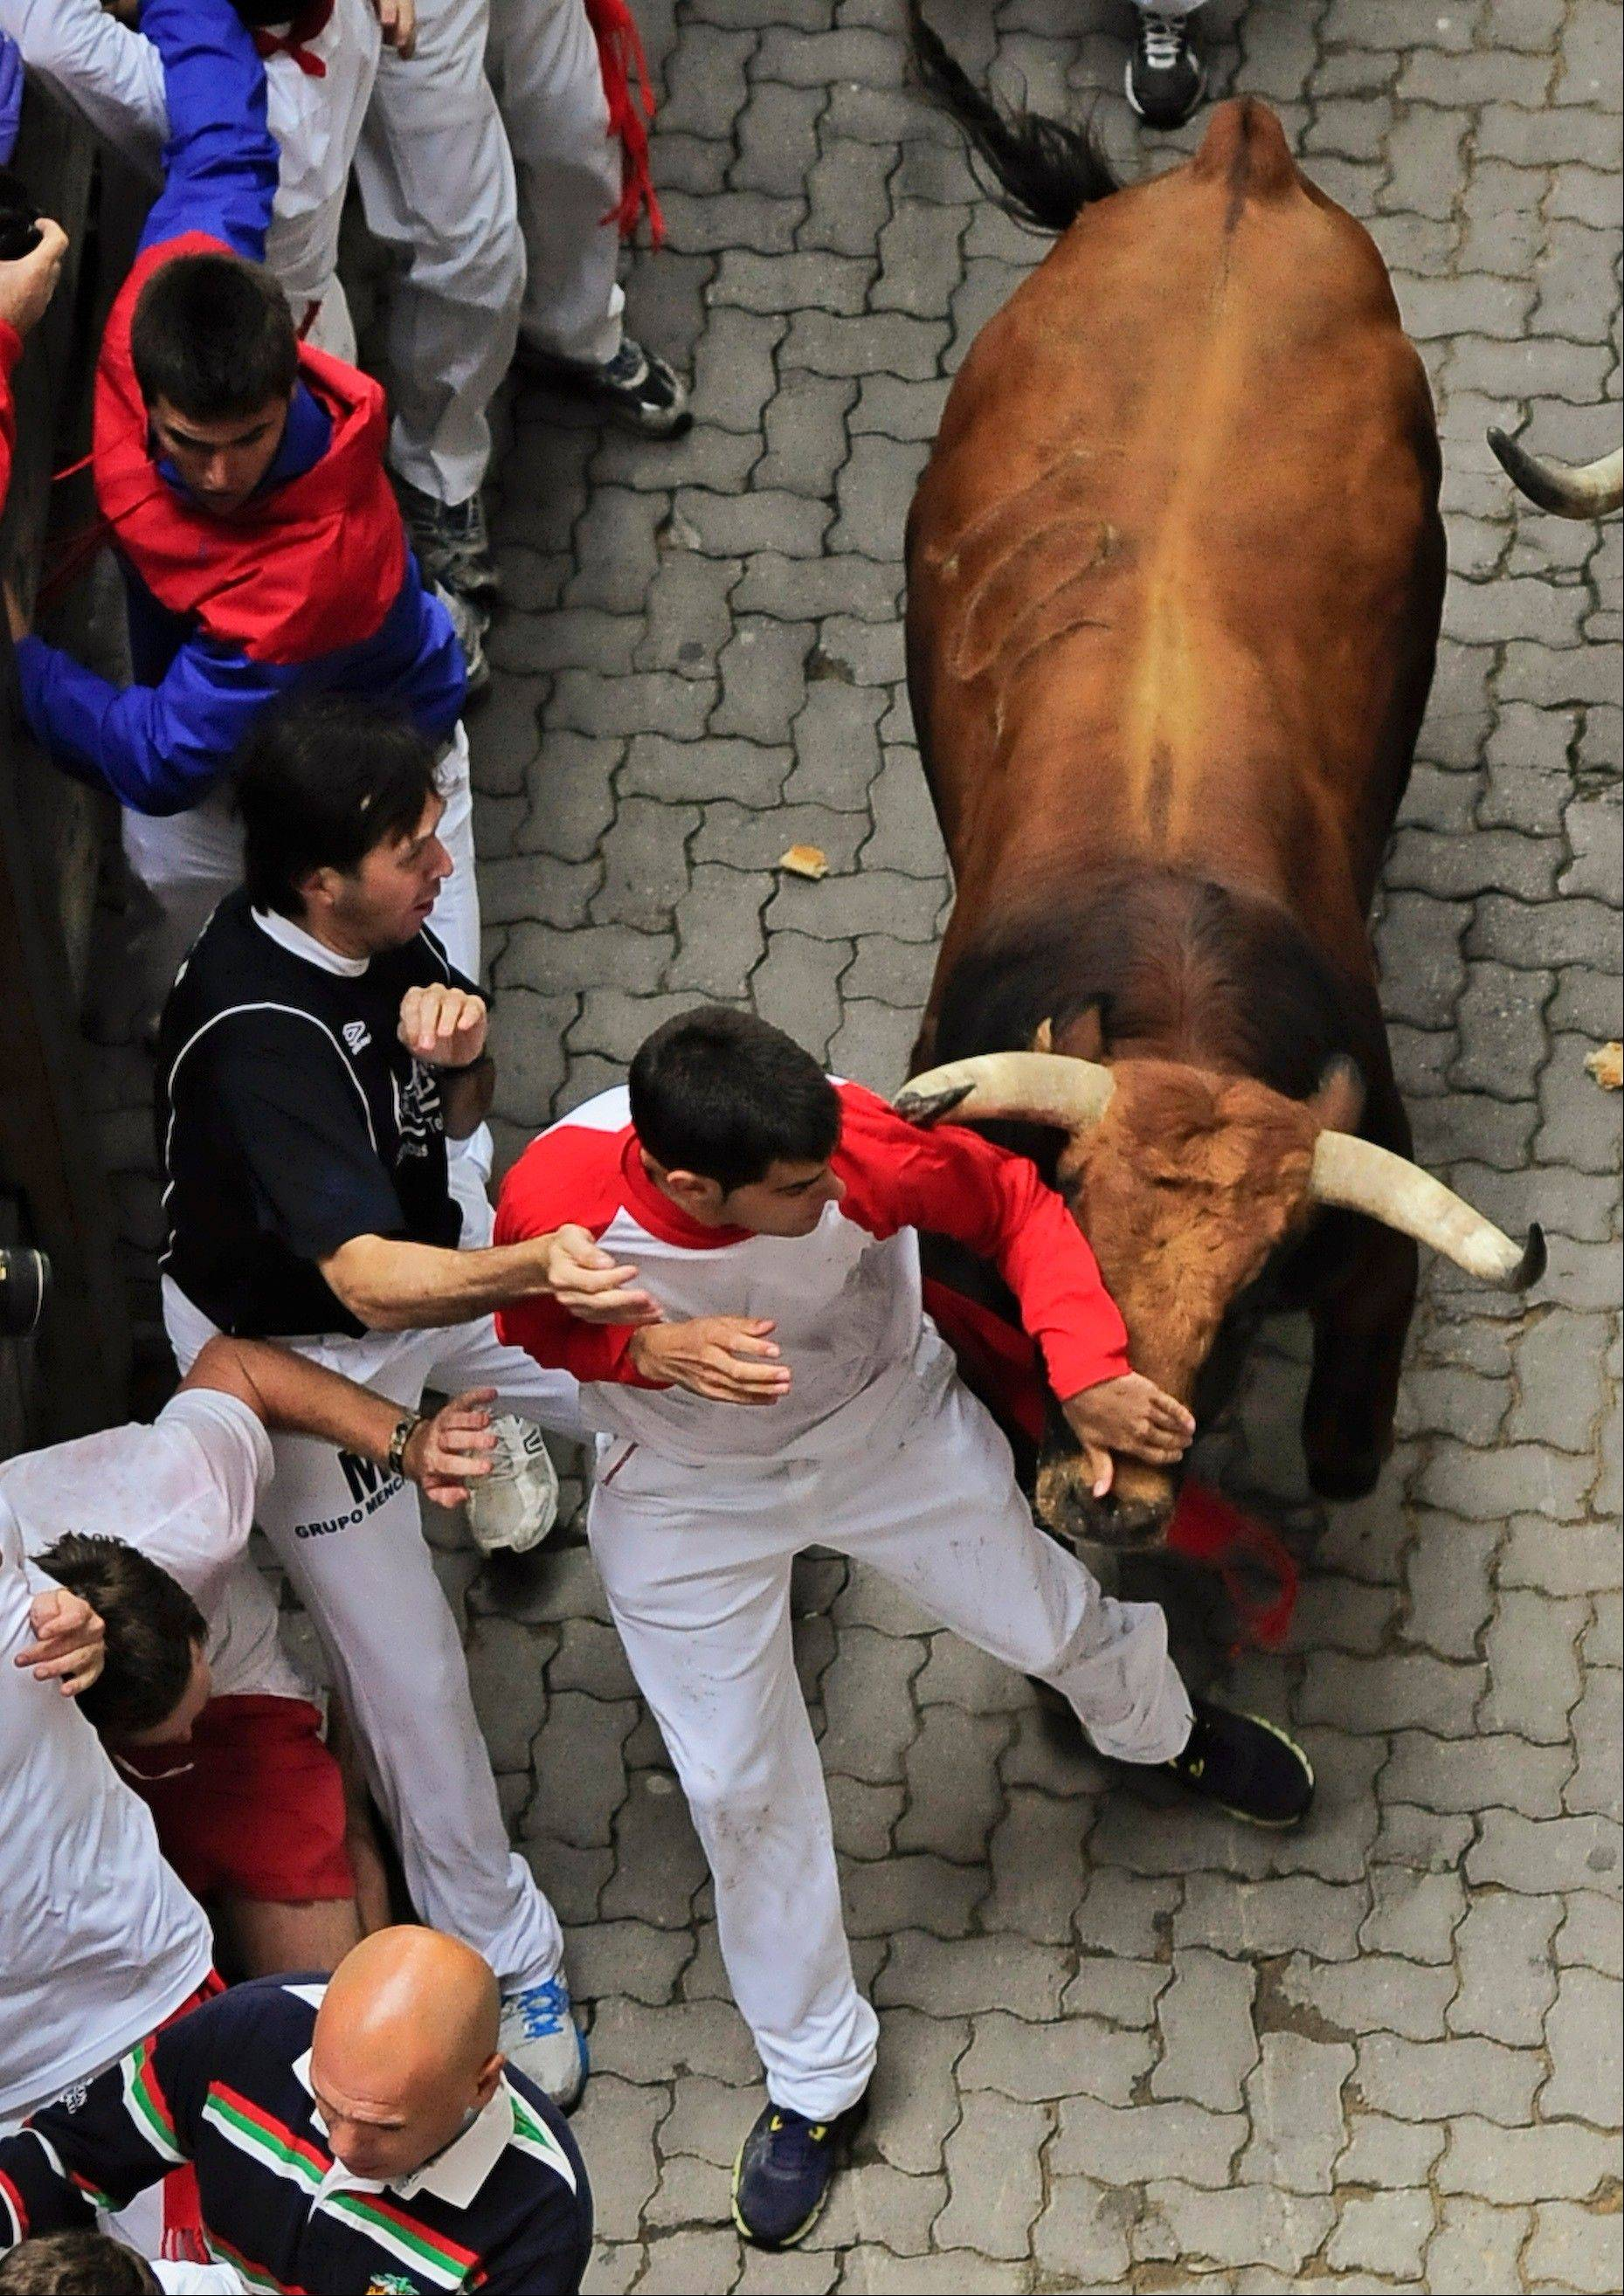 Reveler runs on the Callejon way beside a Cebada Gago ranch fighting bull during the third day of the running of the bulls at the San Fermin fiestas in Pamplona, Spain, on Monday.